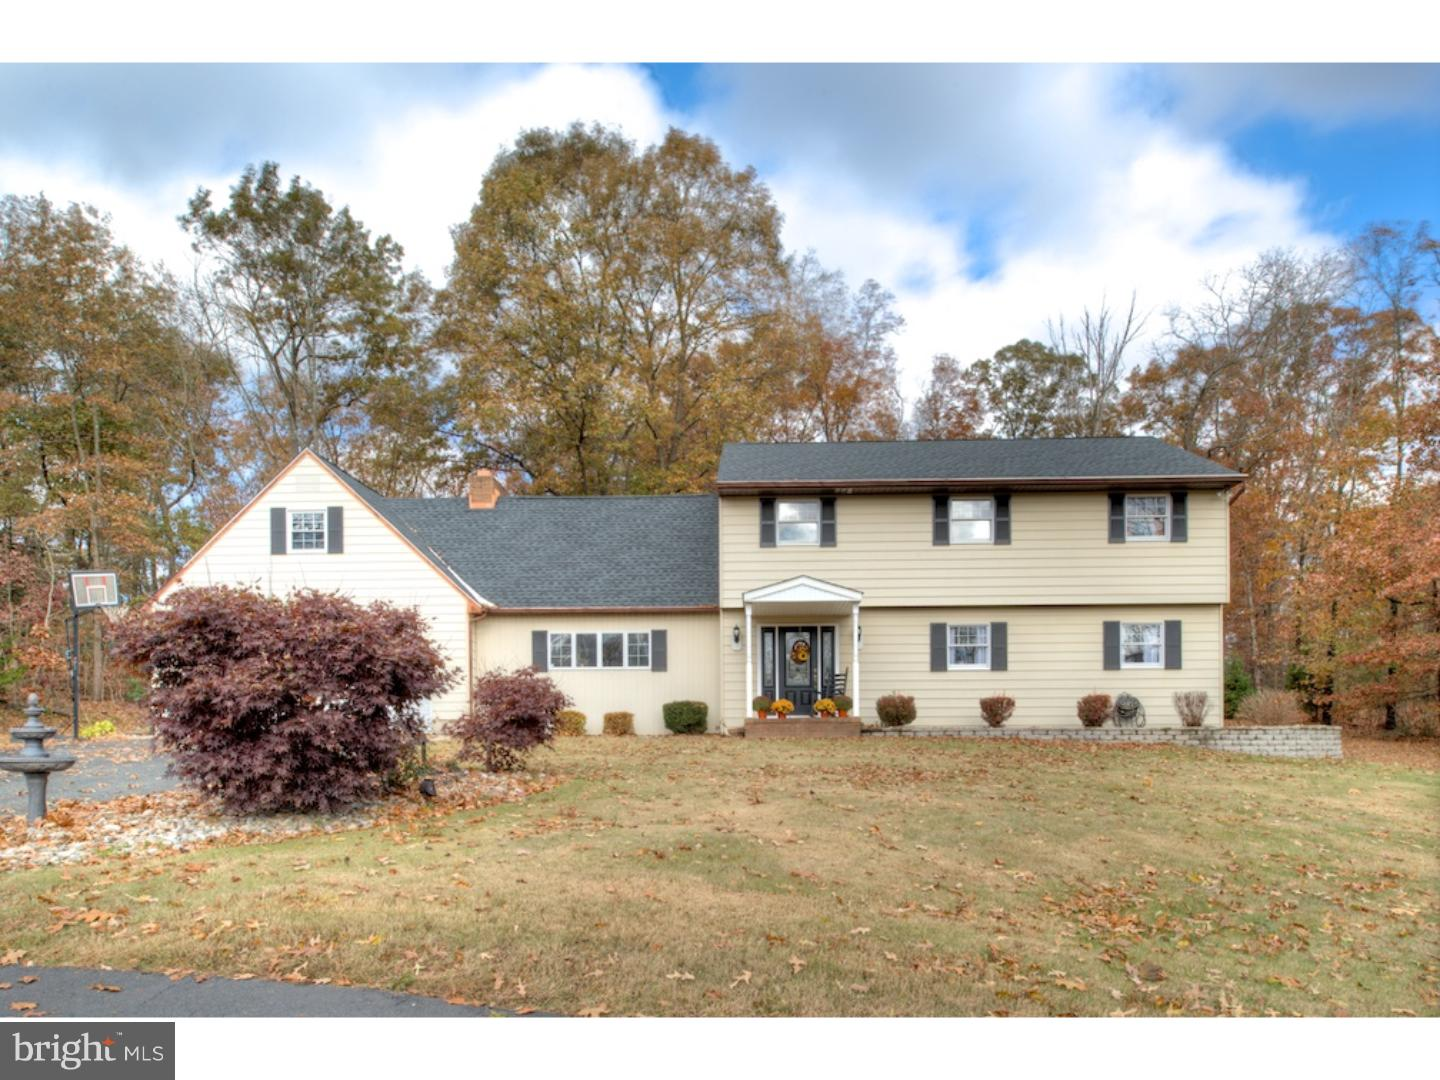 Single Family Home for Sale at 60 W SUNSET PINE Drive Upper Deerfield Township, New Jersey 08302 United States